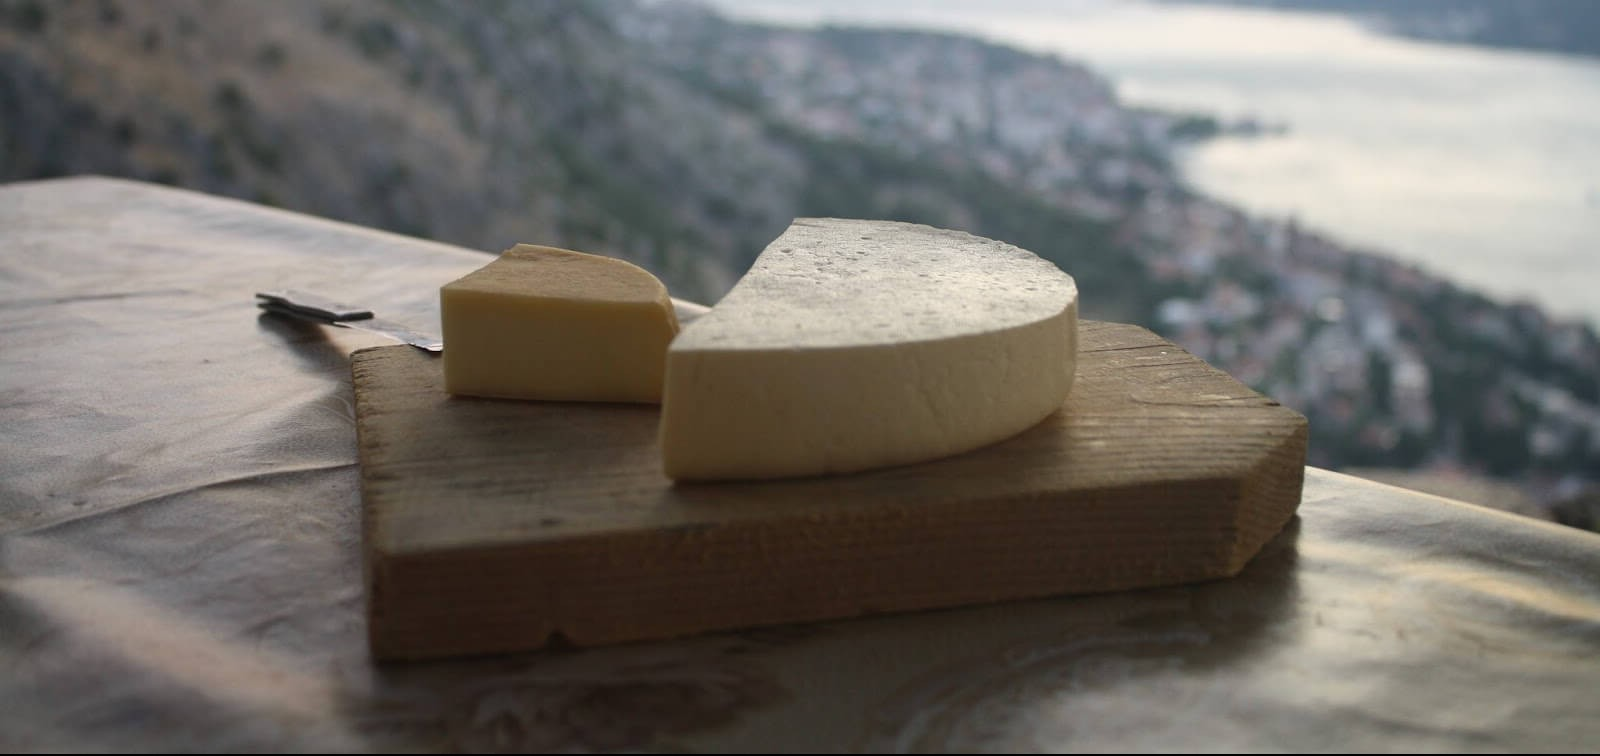 donkey cheese is most expensive cheese in the world